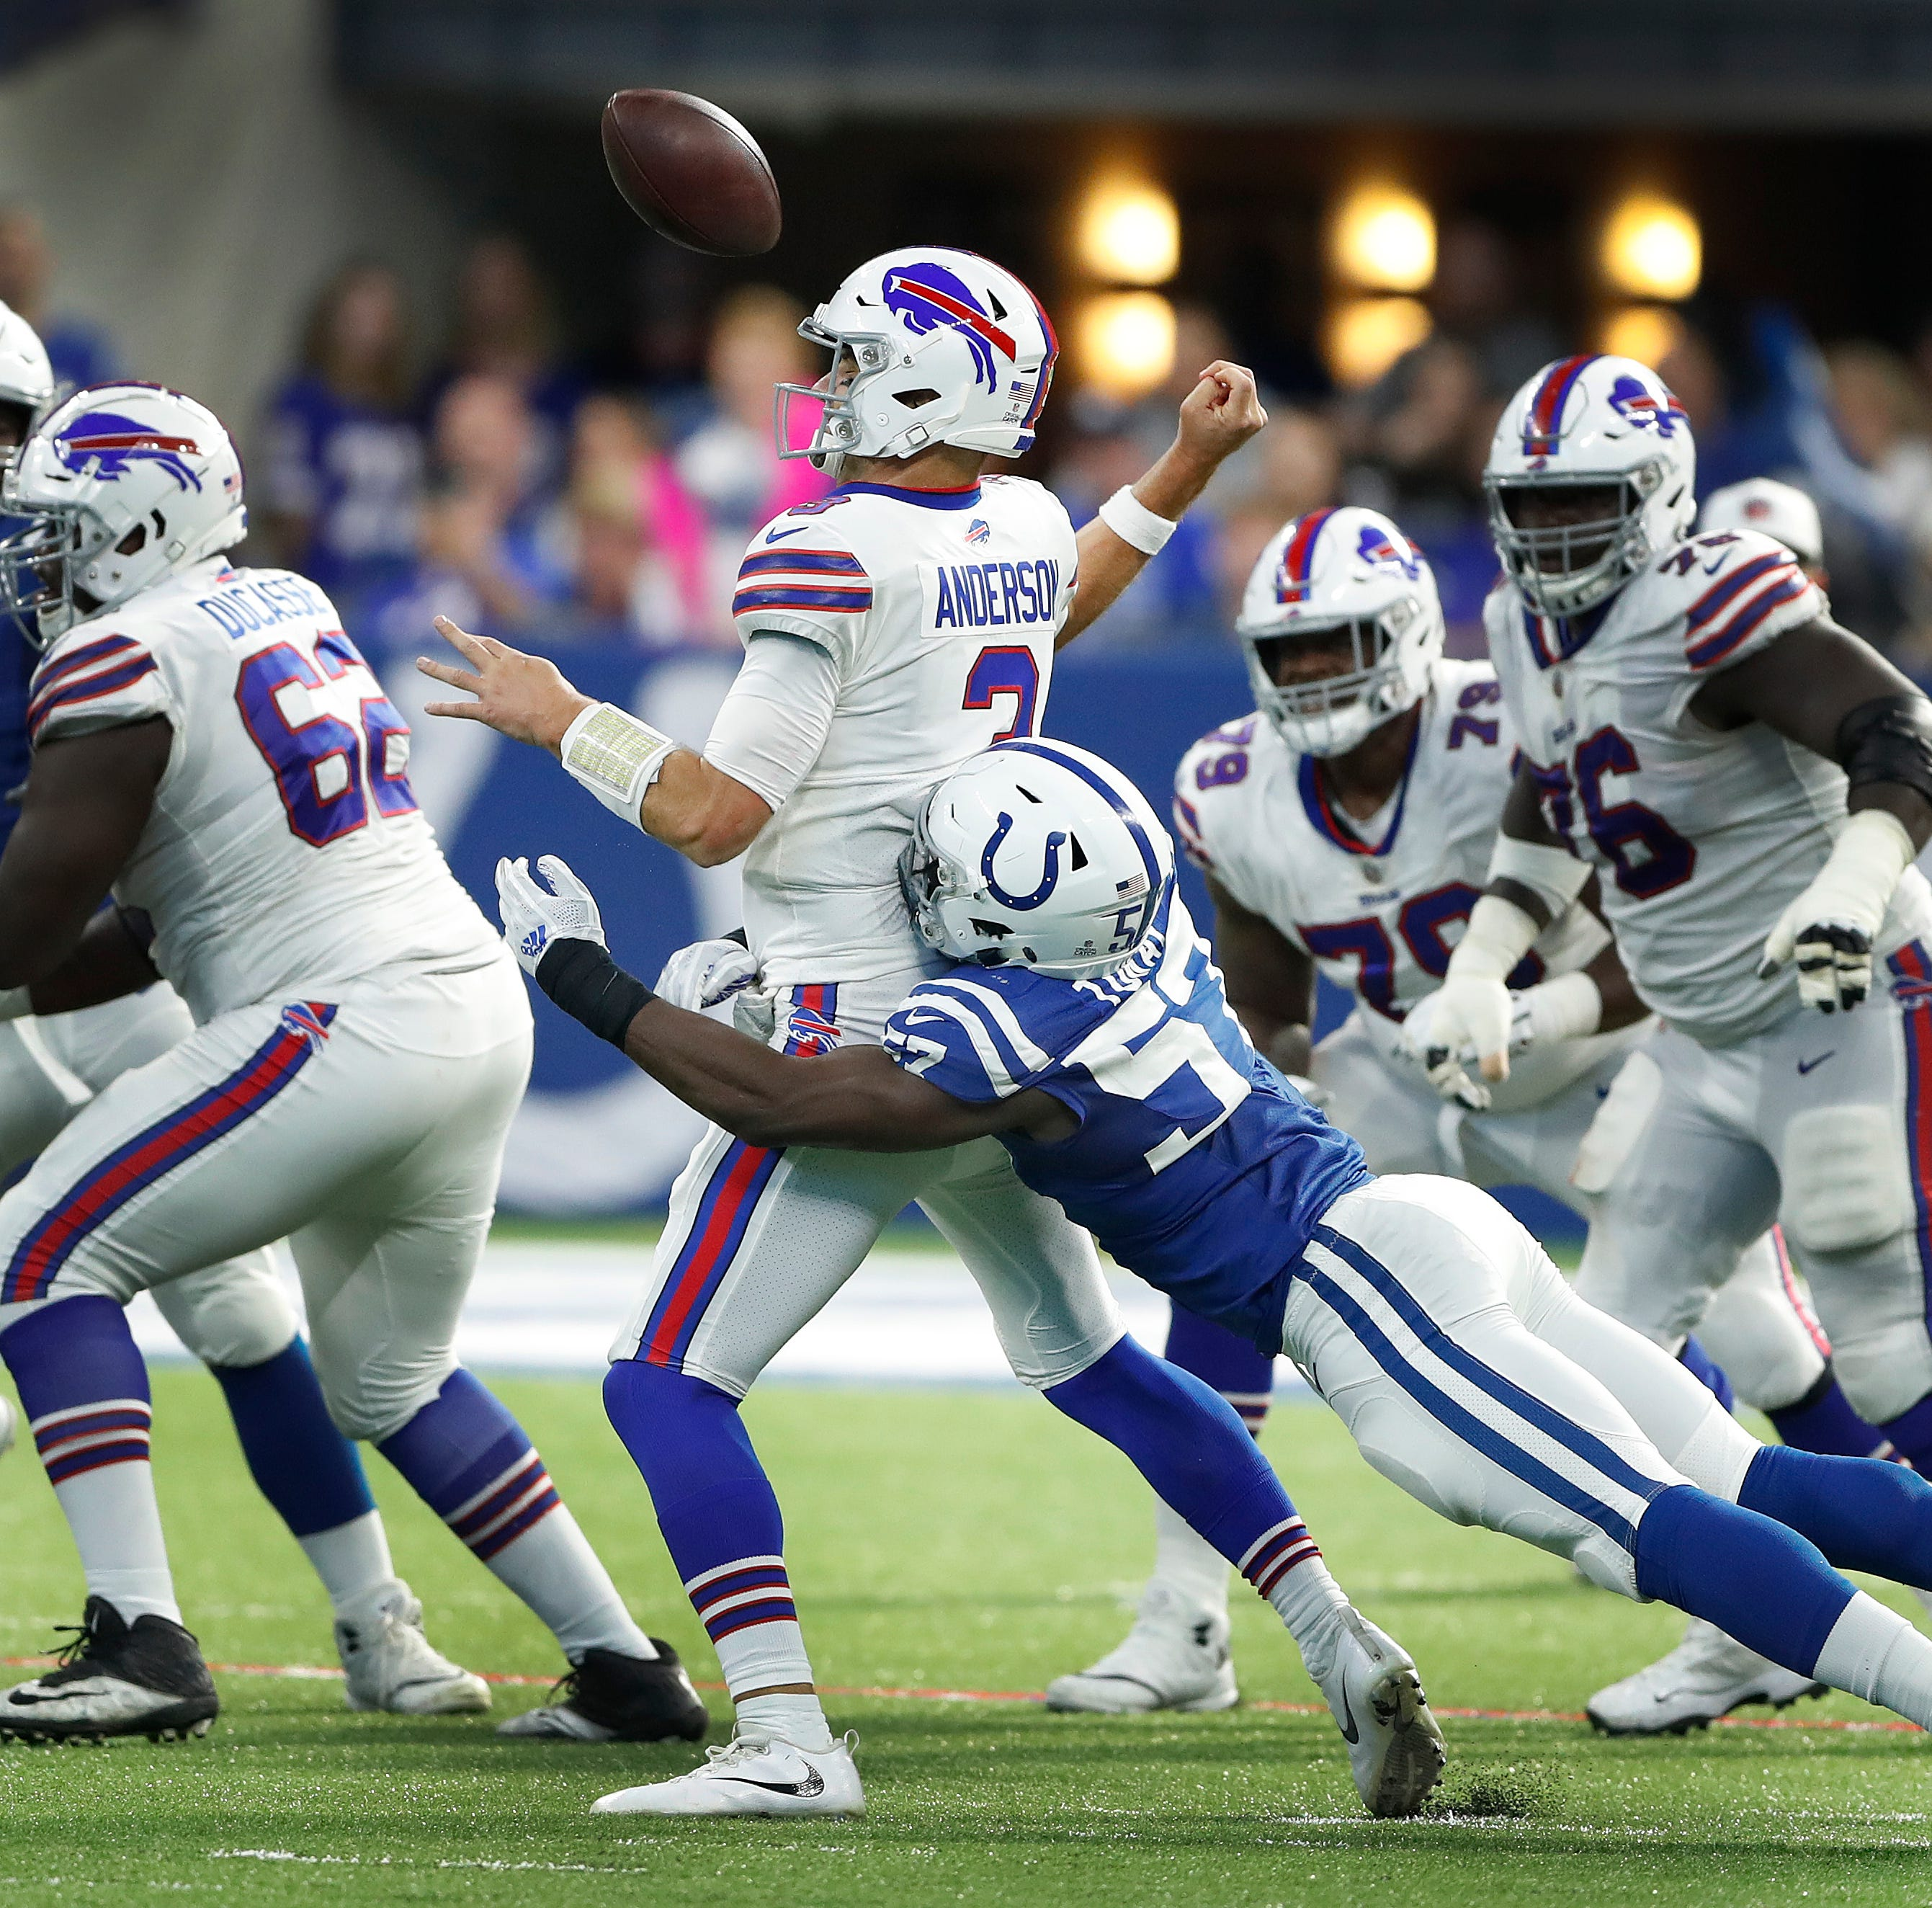 Insider: Opponent aside, Colts defense needed performance like Sunday's